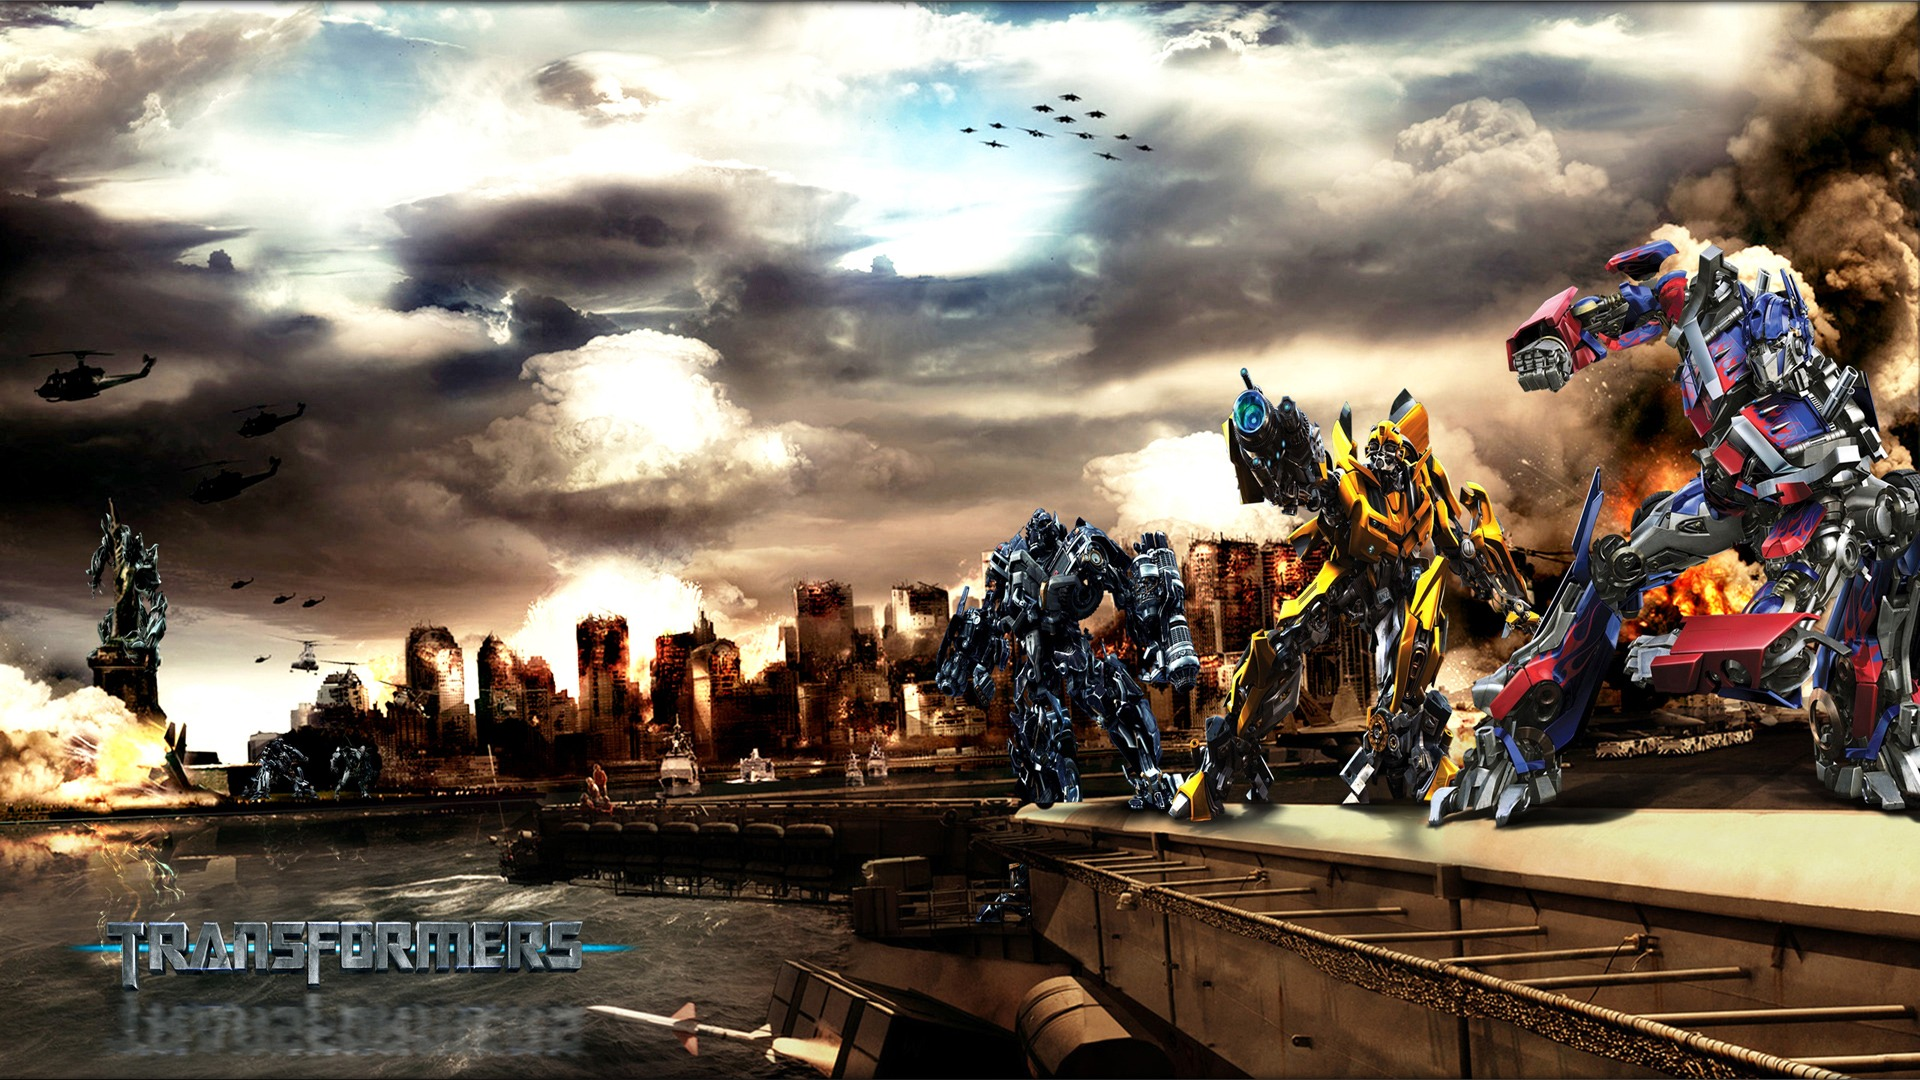 hd transformers wallpapers backgrounds for free download hd transformers wallpapers